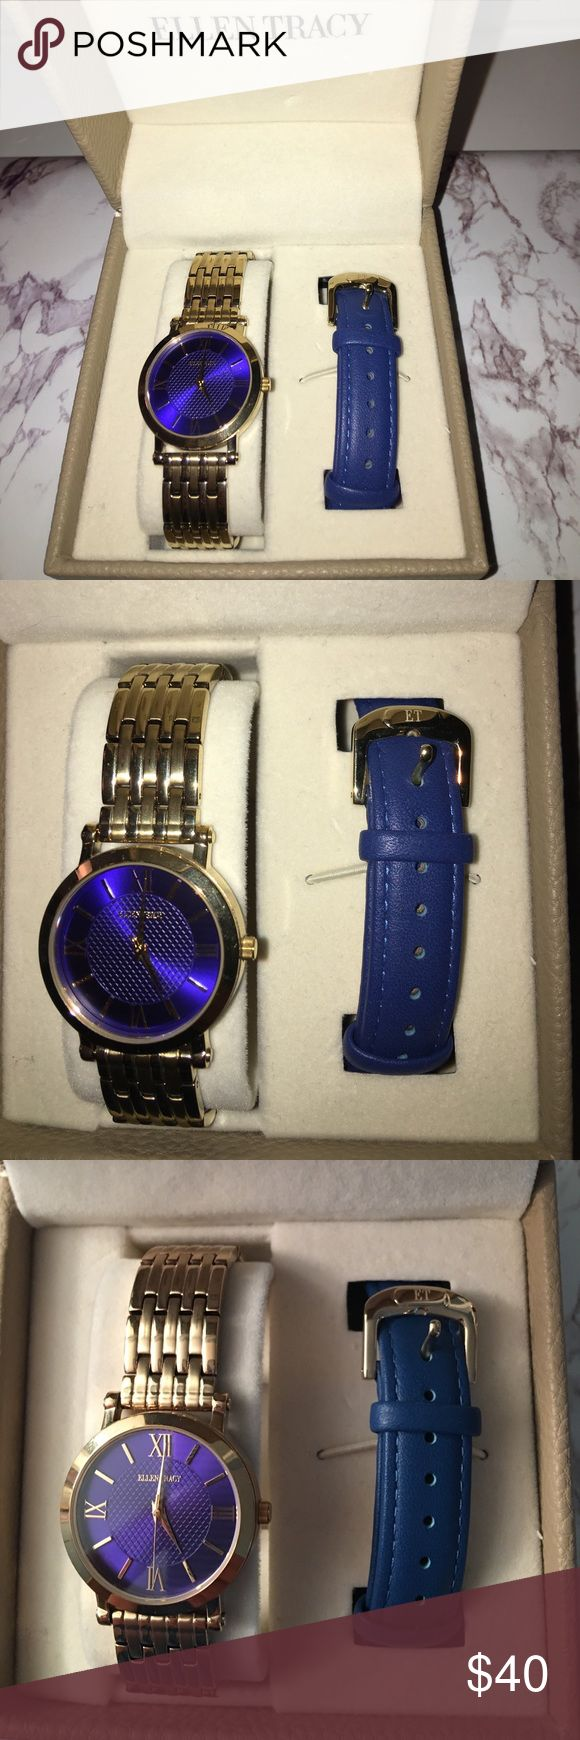 Ellen Tracy woman's watch Ellen Tracy women's watch gold and blue. You can interchange the gold band & the leather blue band. Comes with the extra links that I took off. Never worn this watch it's just been sitting in my closet. No scratches or anything like that since it's been in the box. Please ask for more pictures you want! Questions offers & comments welcome! Ellen Tracy Accessories Watches